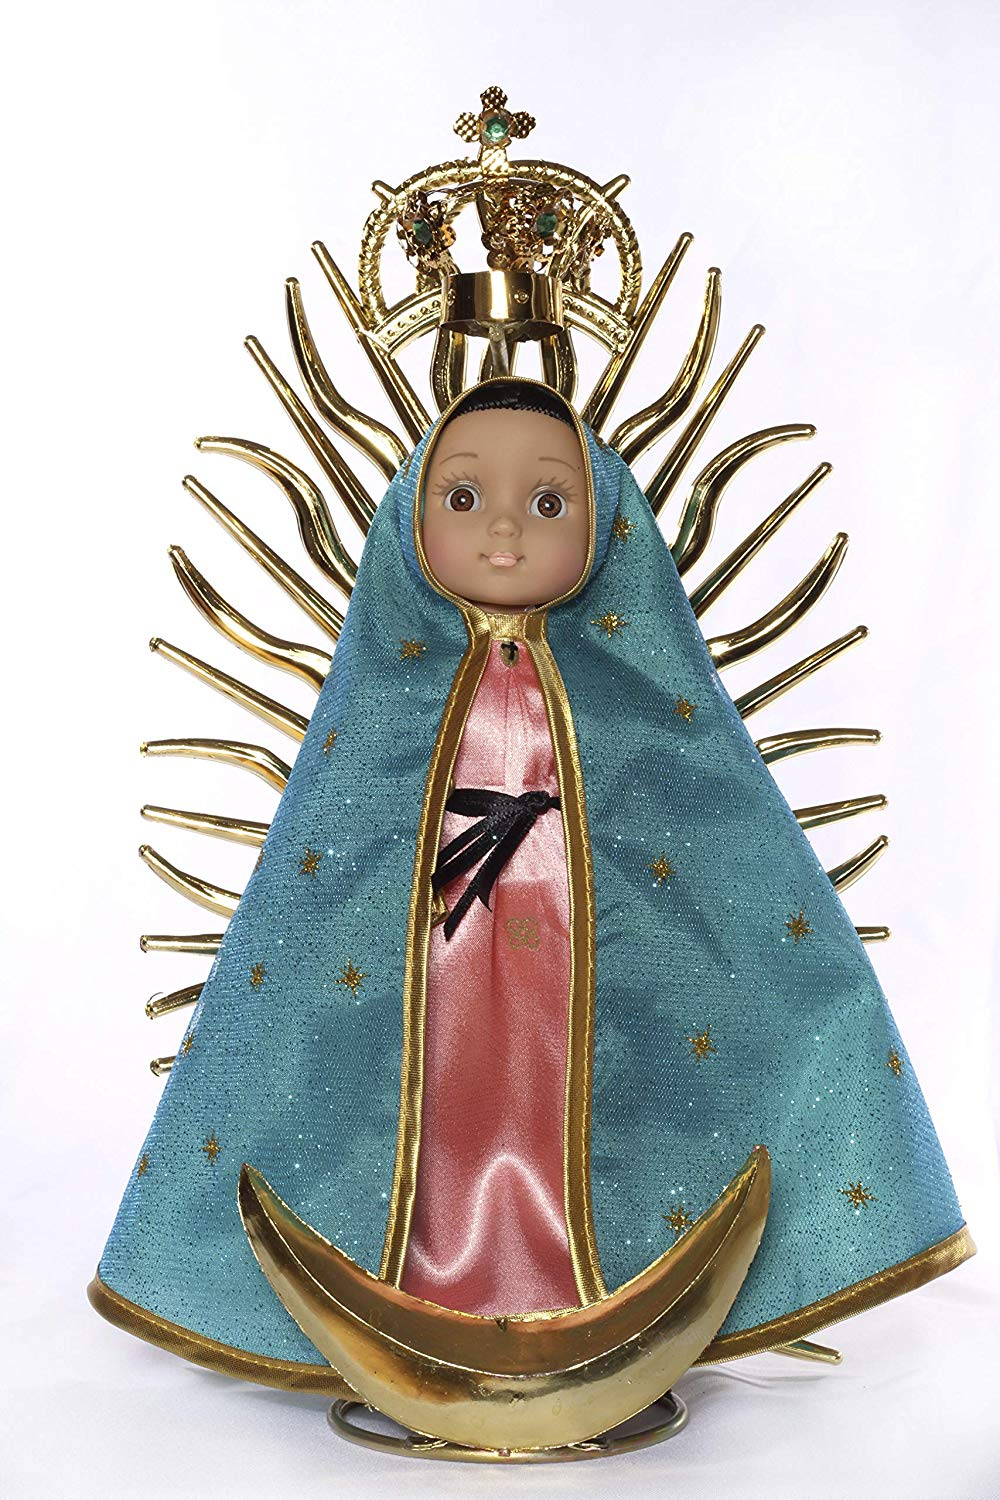 MARIA CONTIGO / Our Lady of Guadalupe 10'' Doll with Rosary 'Special Edition'